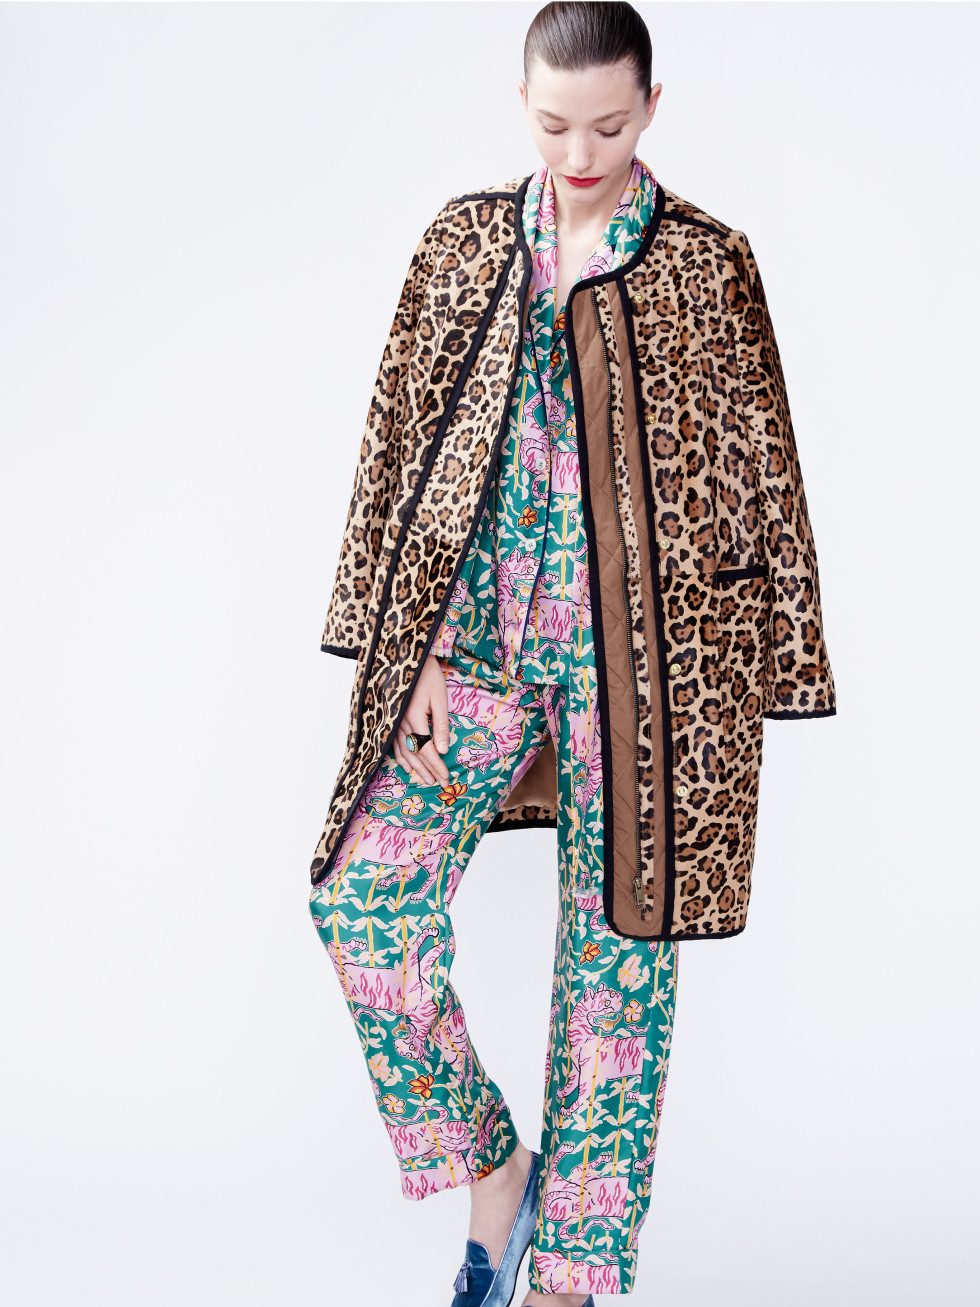 J Crew fall 2016 collection women look 6